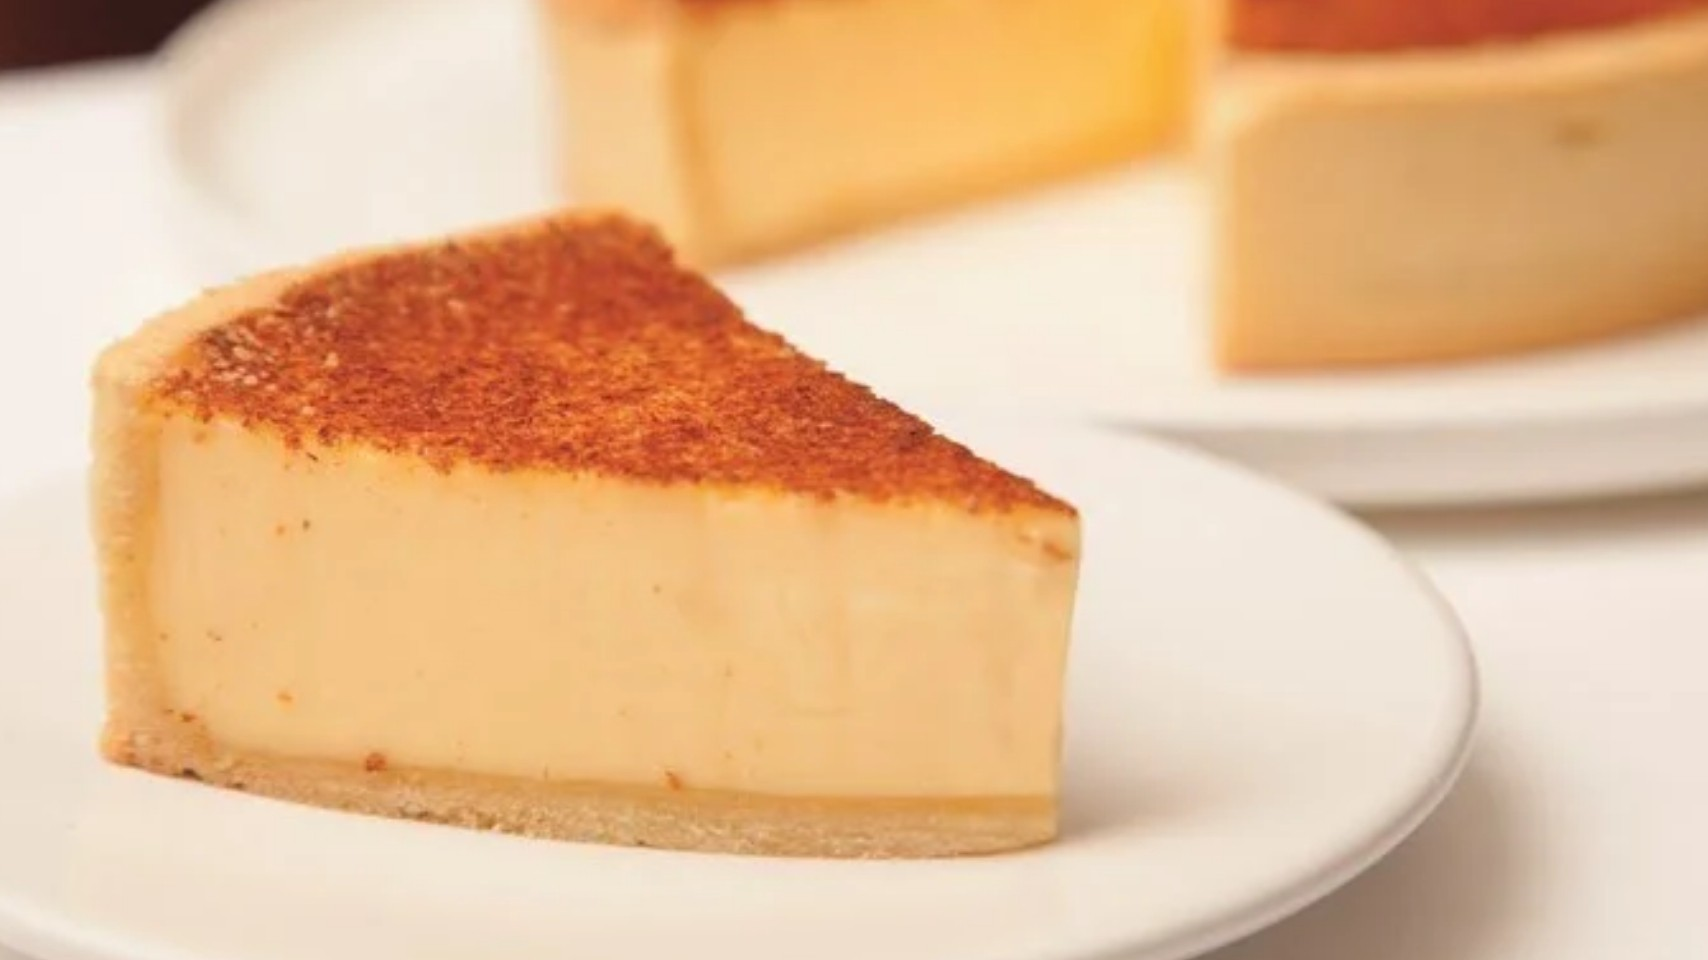 A piece of Custard Tart on a white plate by Marcus Wareing, awarded as Remy Martin Best Dessert in 2012